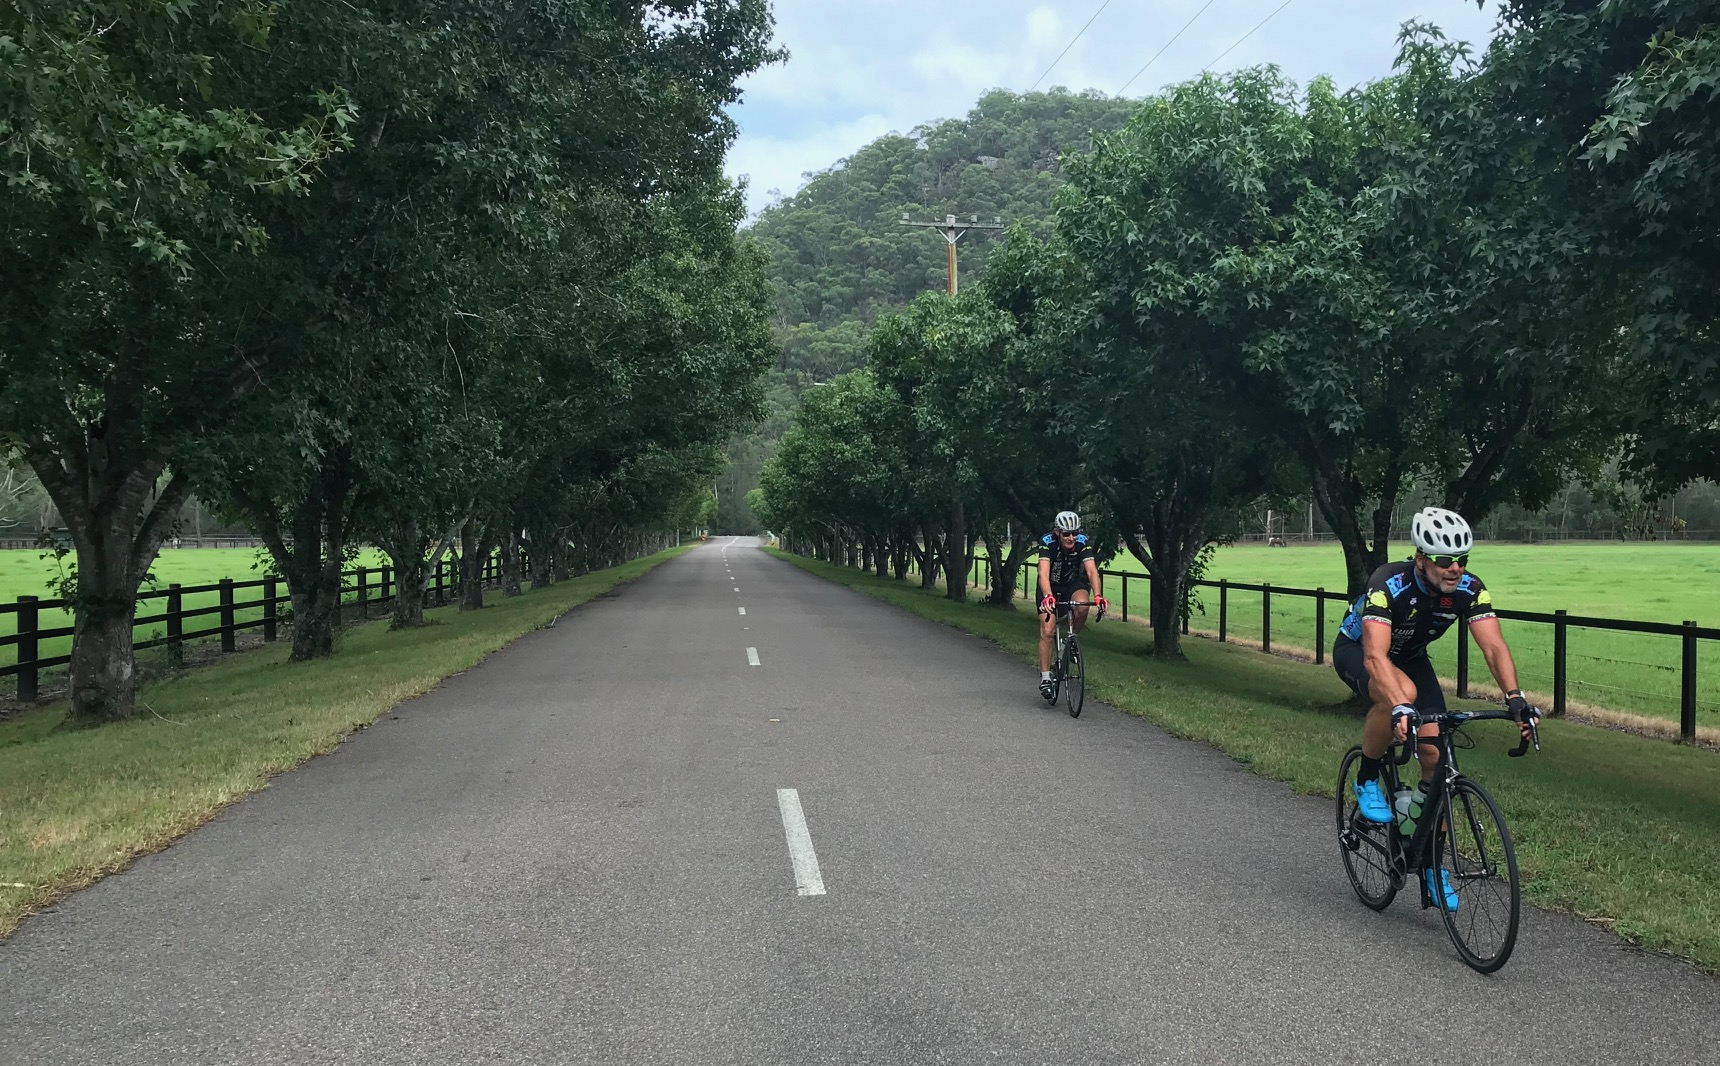 BiciSport Wisemans Loop @ 24 Feb - Marty Wright leads Raoul Westbrook past the Muskoka Farm willows outside Spencer towards the Central Mangrove climb